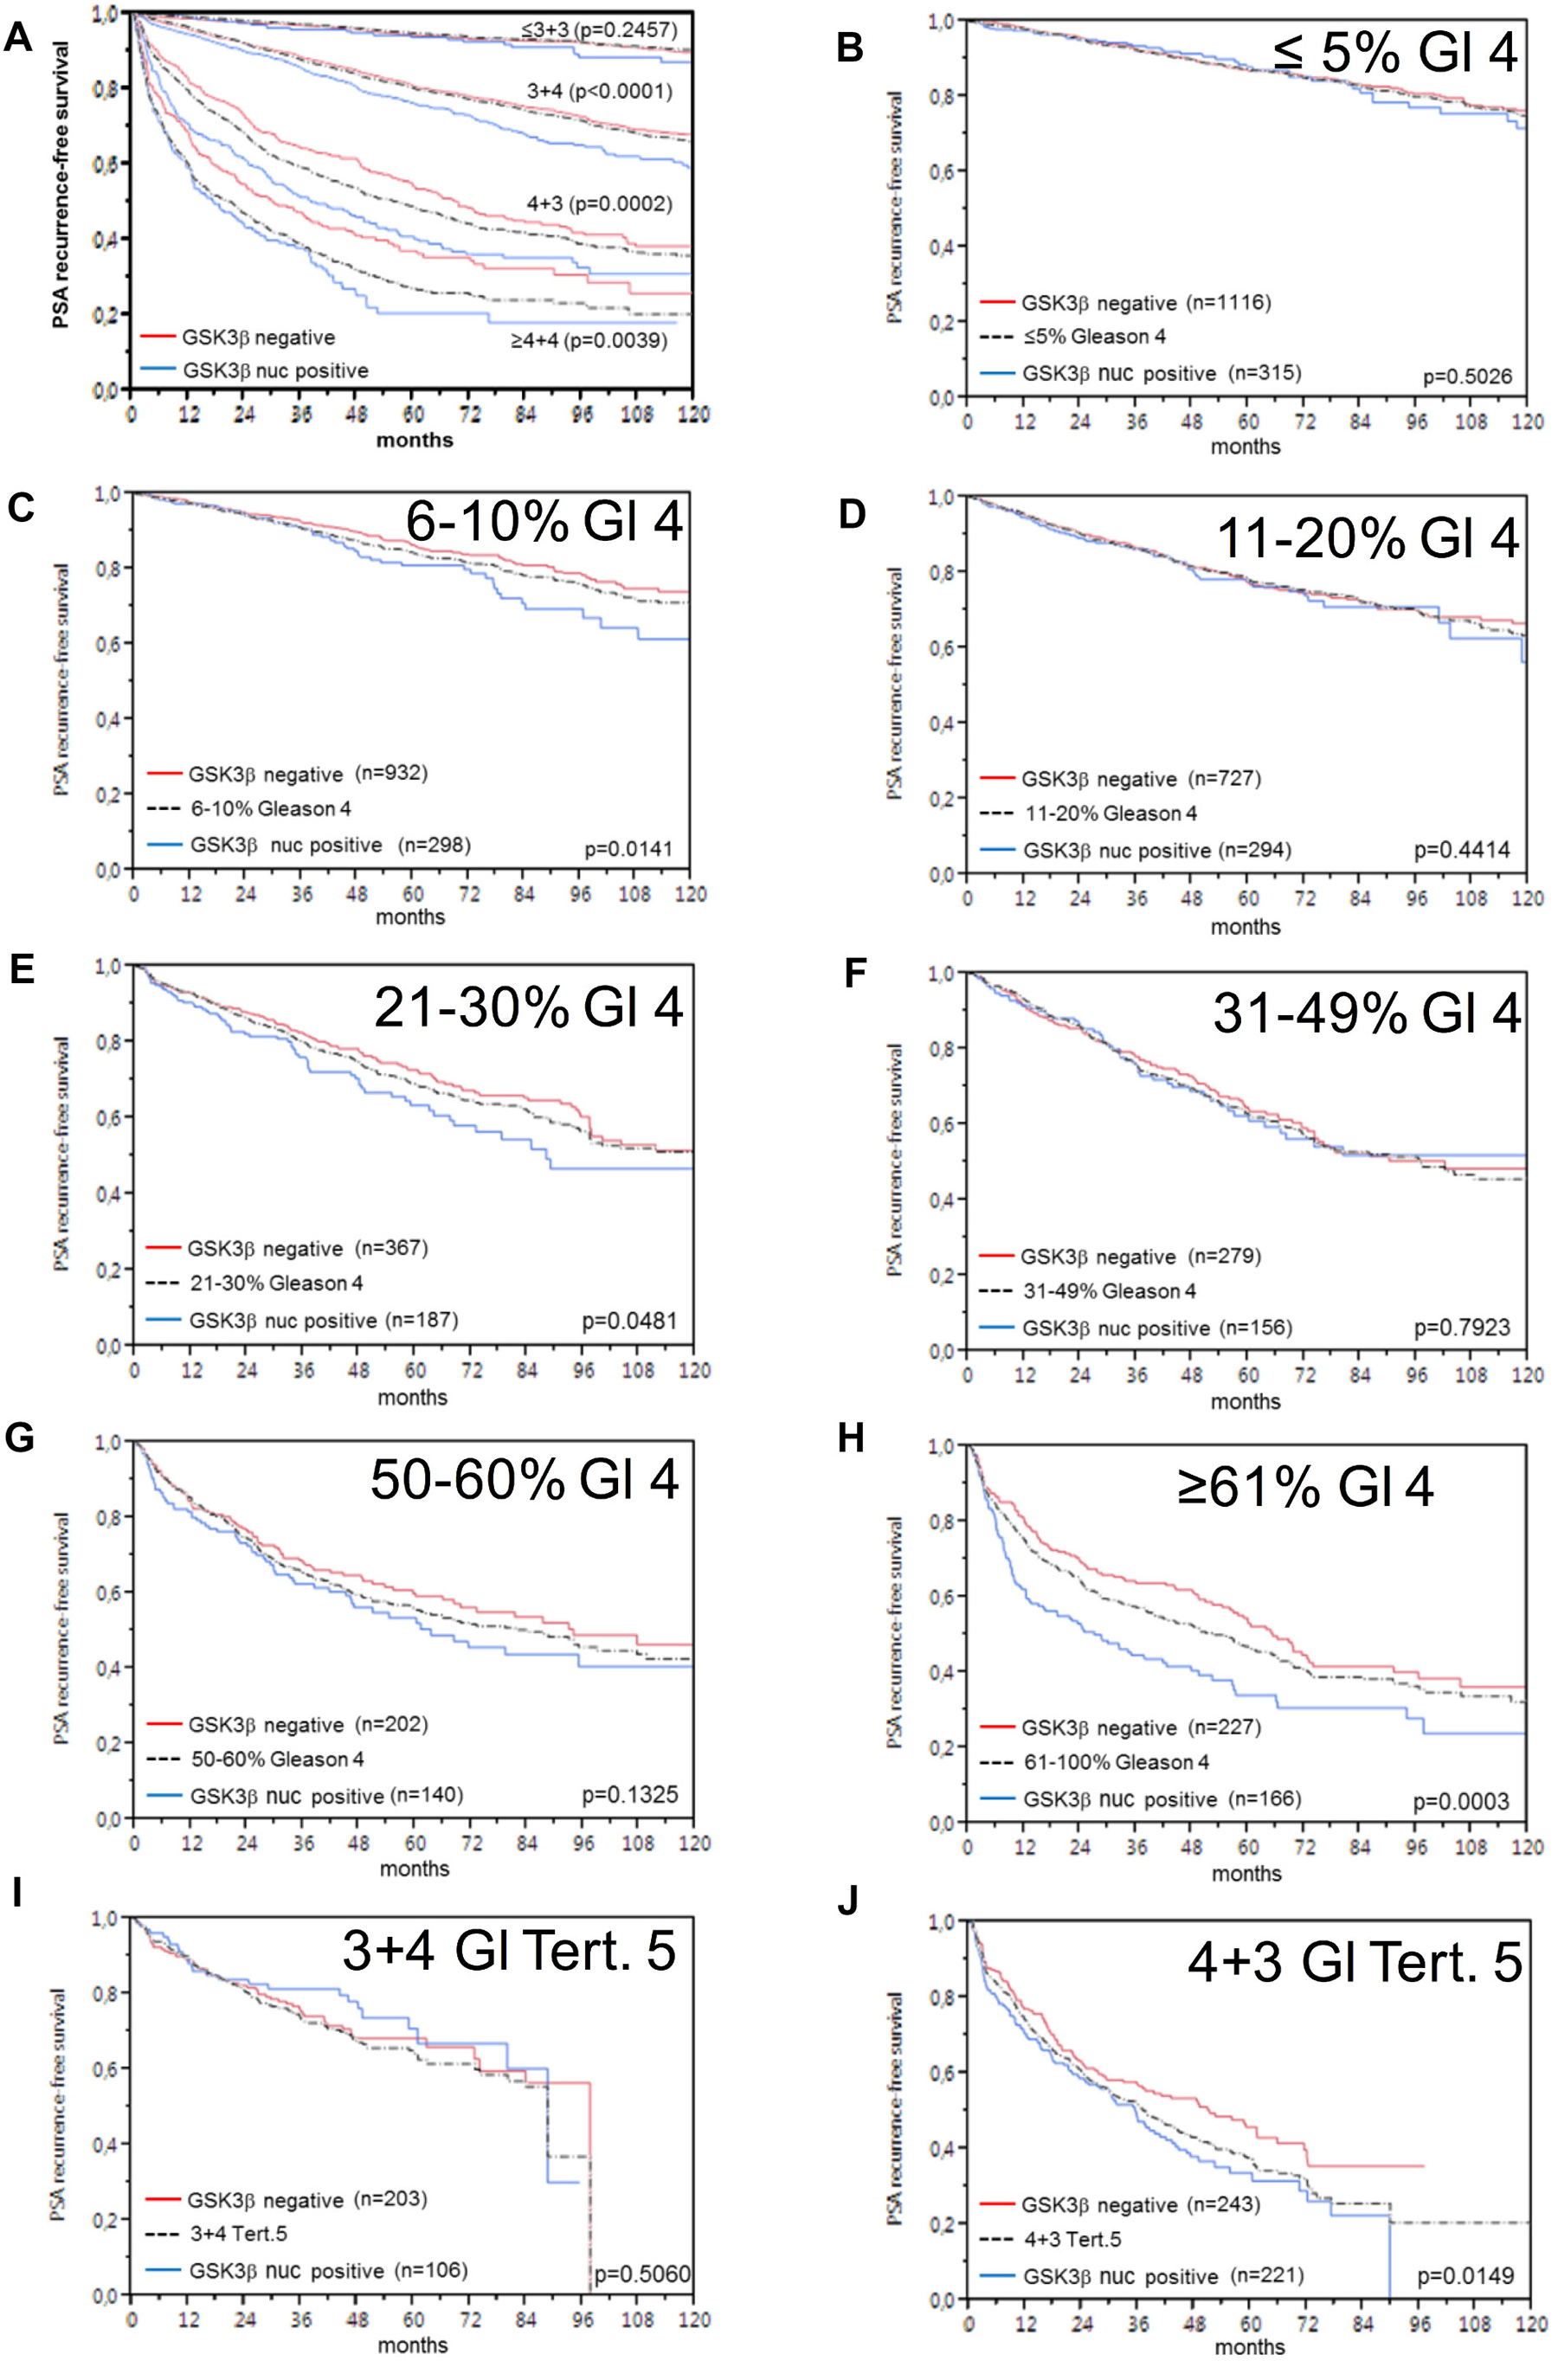 Prognostic impact of GSK3ß expression in subsets of cancers defined by the Gleason score.